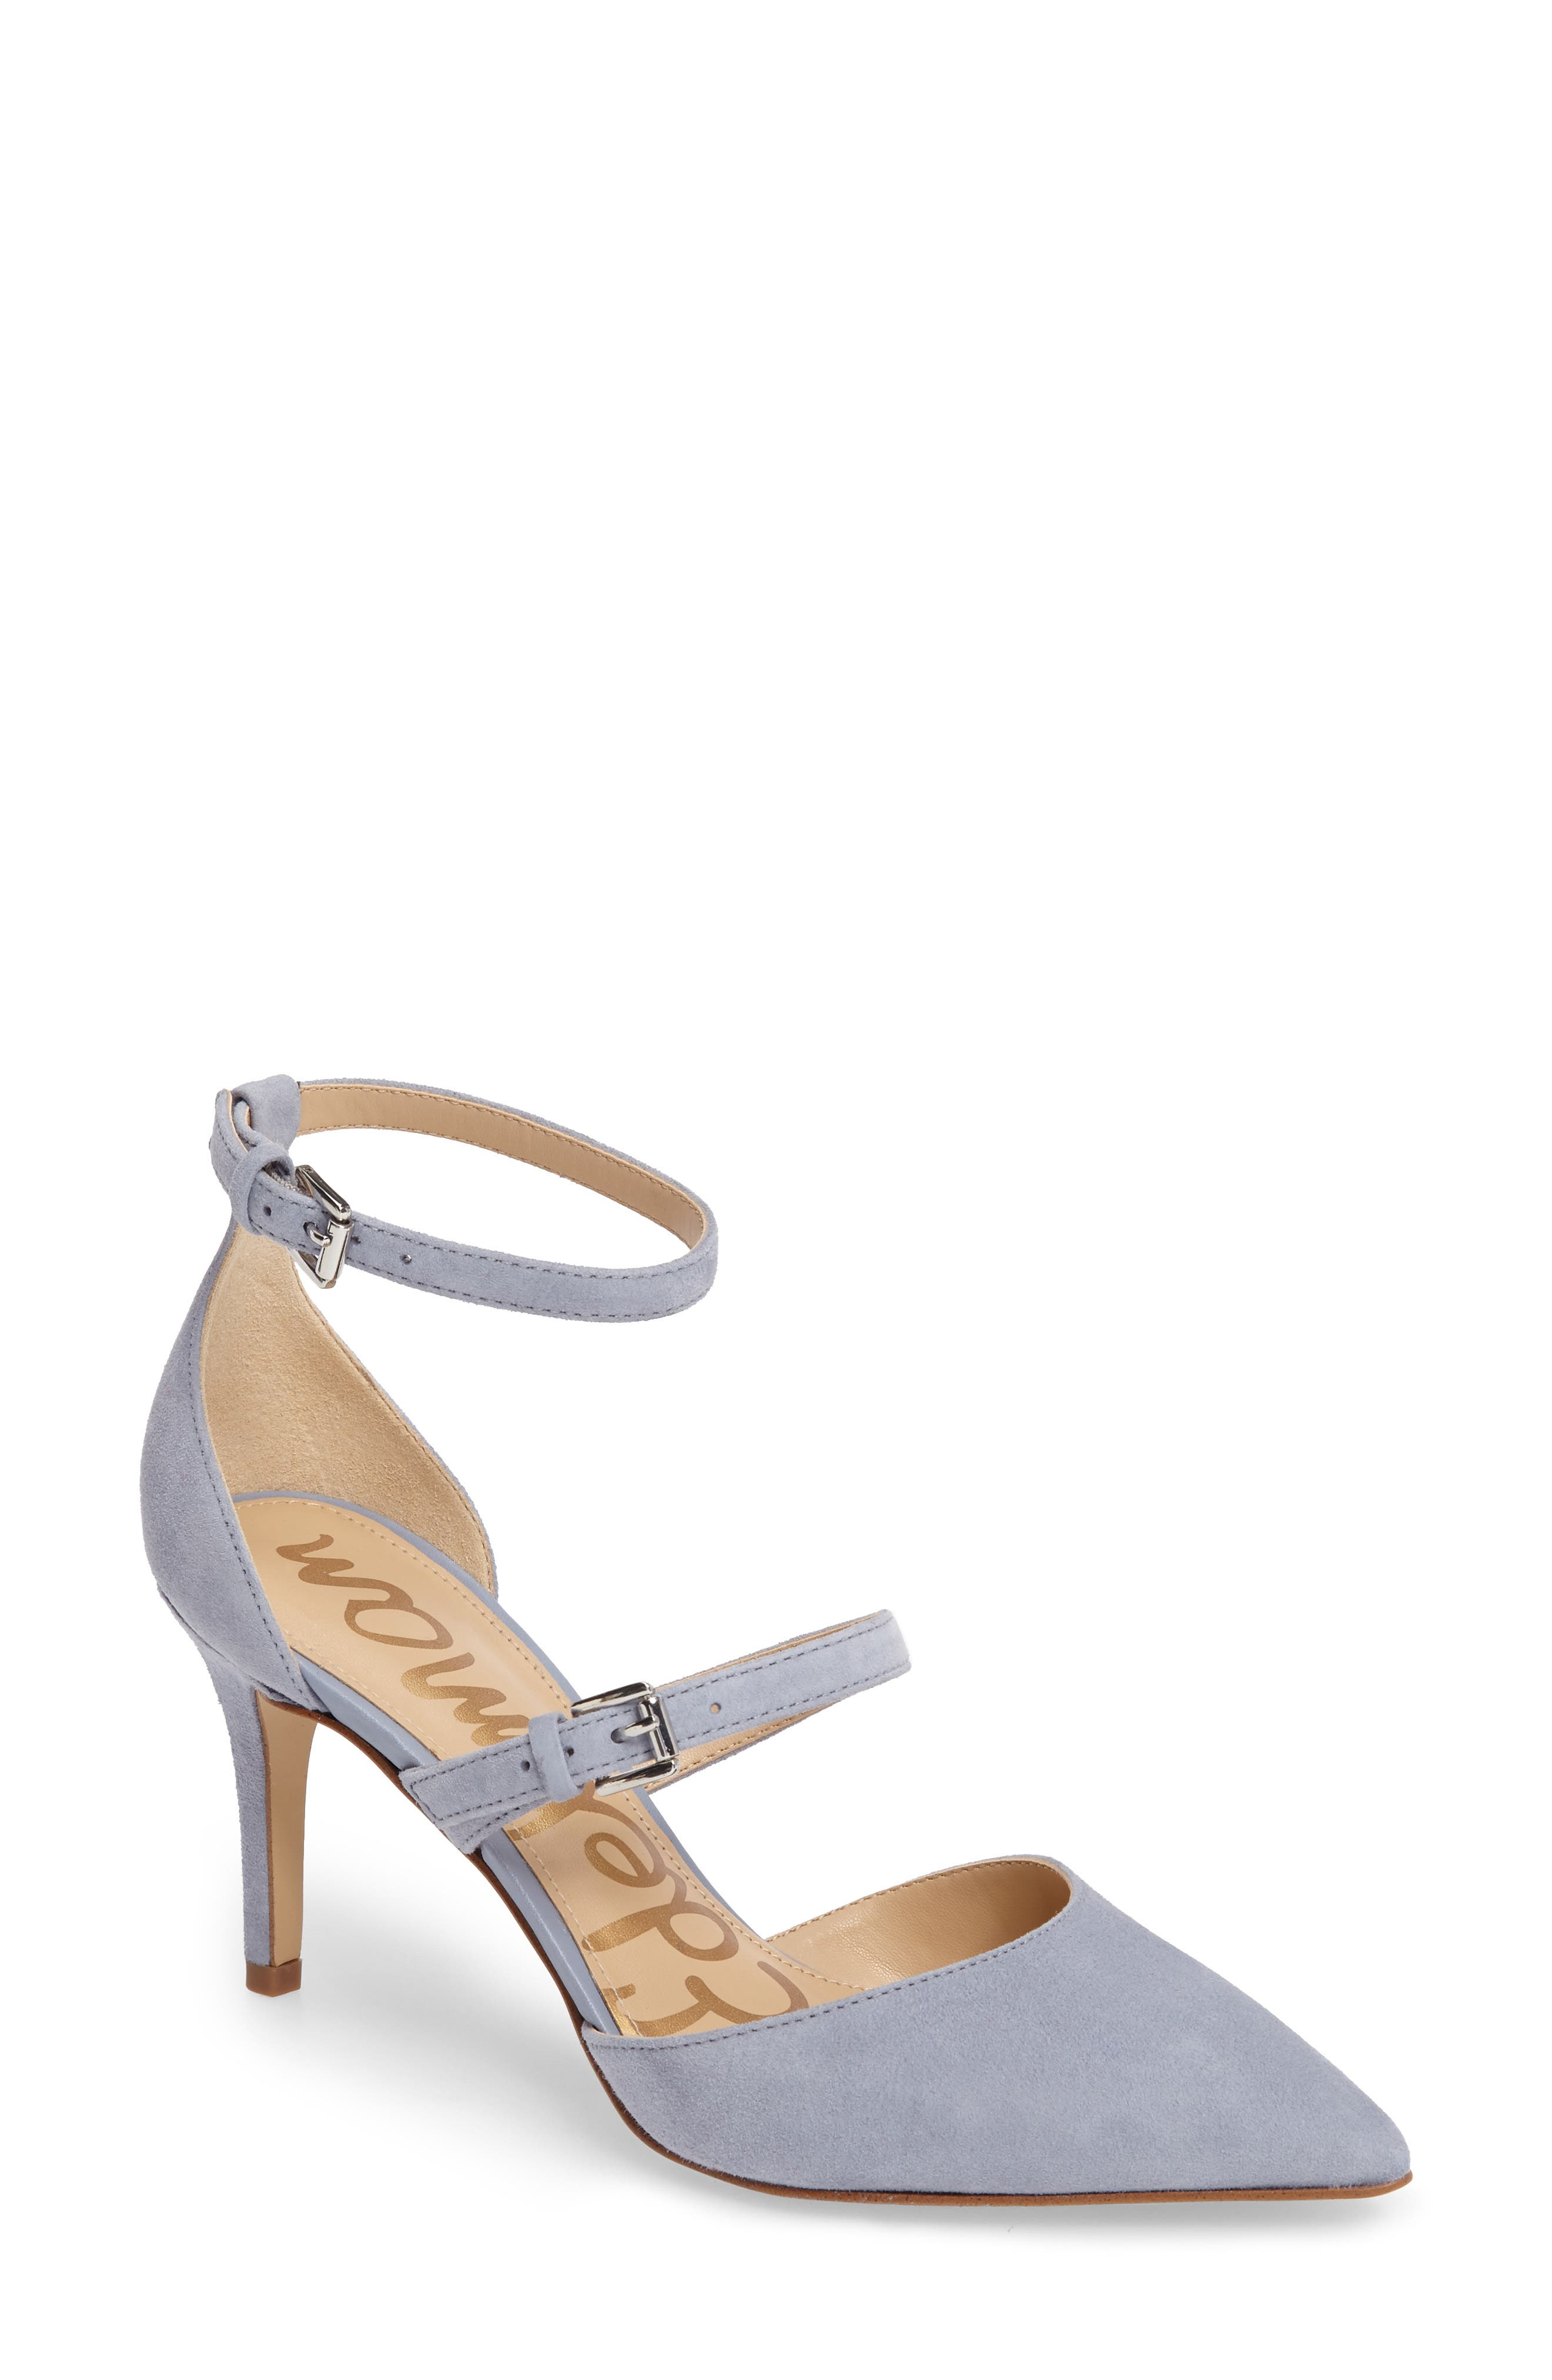 Main Image - Sam Edelman 'Thea' Strappy Pump (Women)